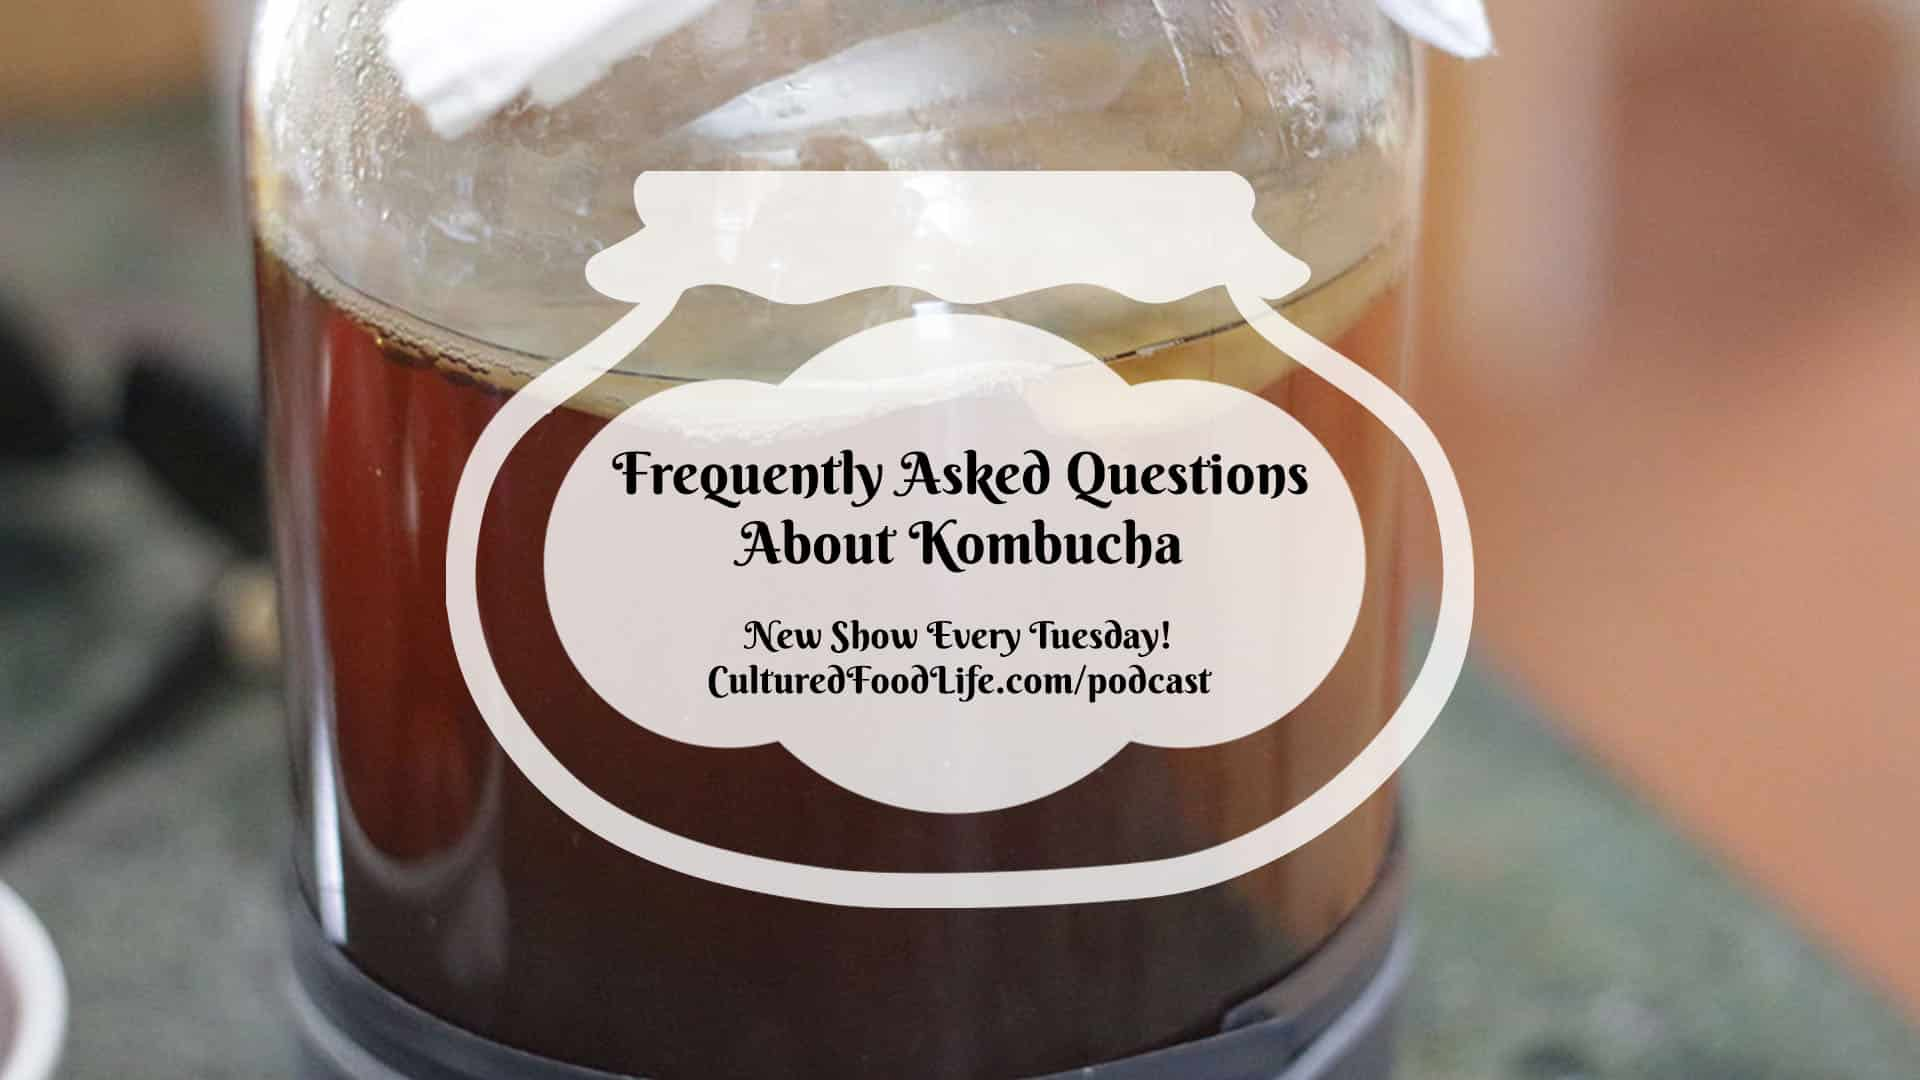 Frequently Asked Questions About Kombucha